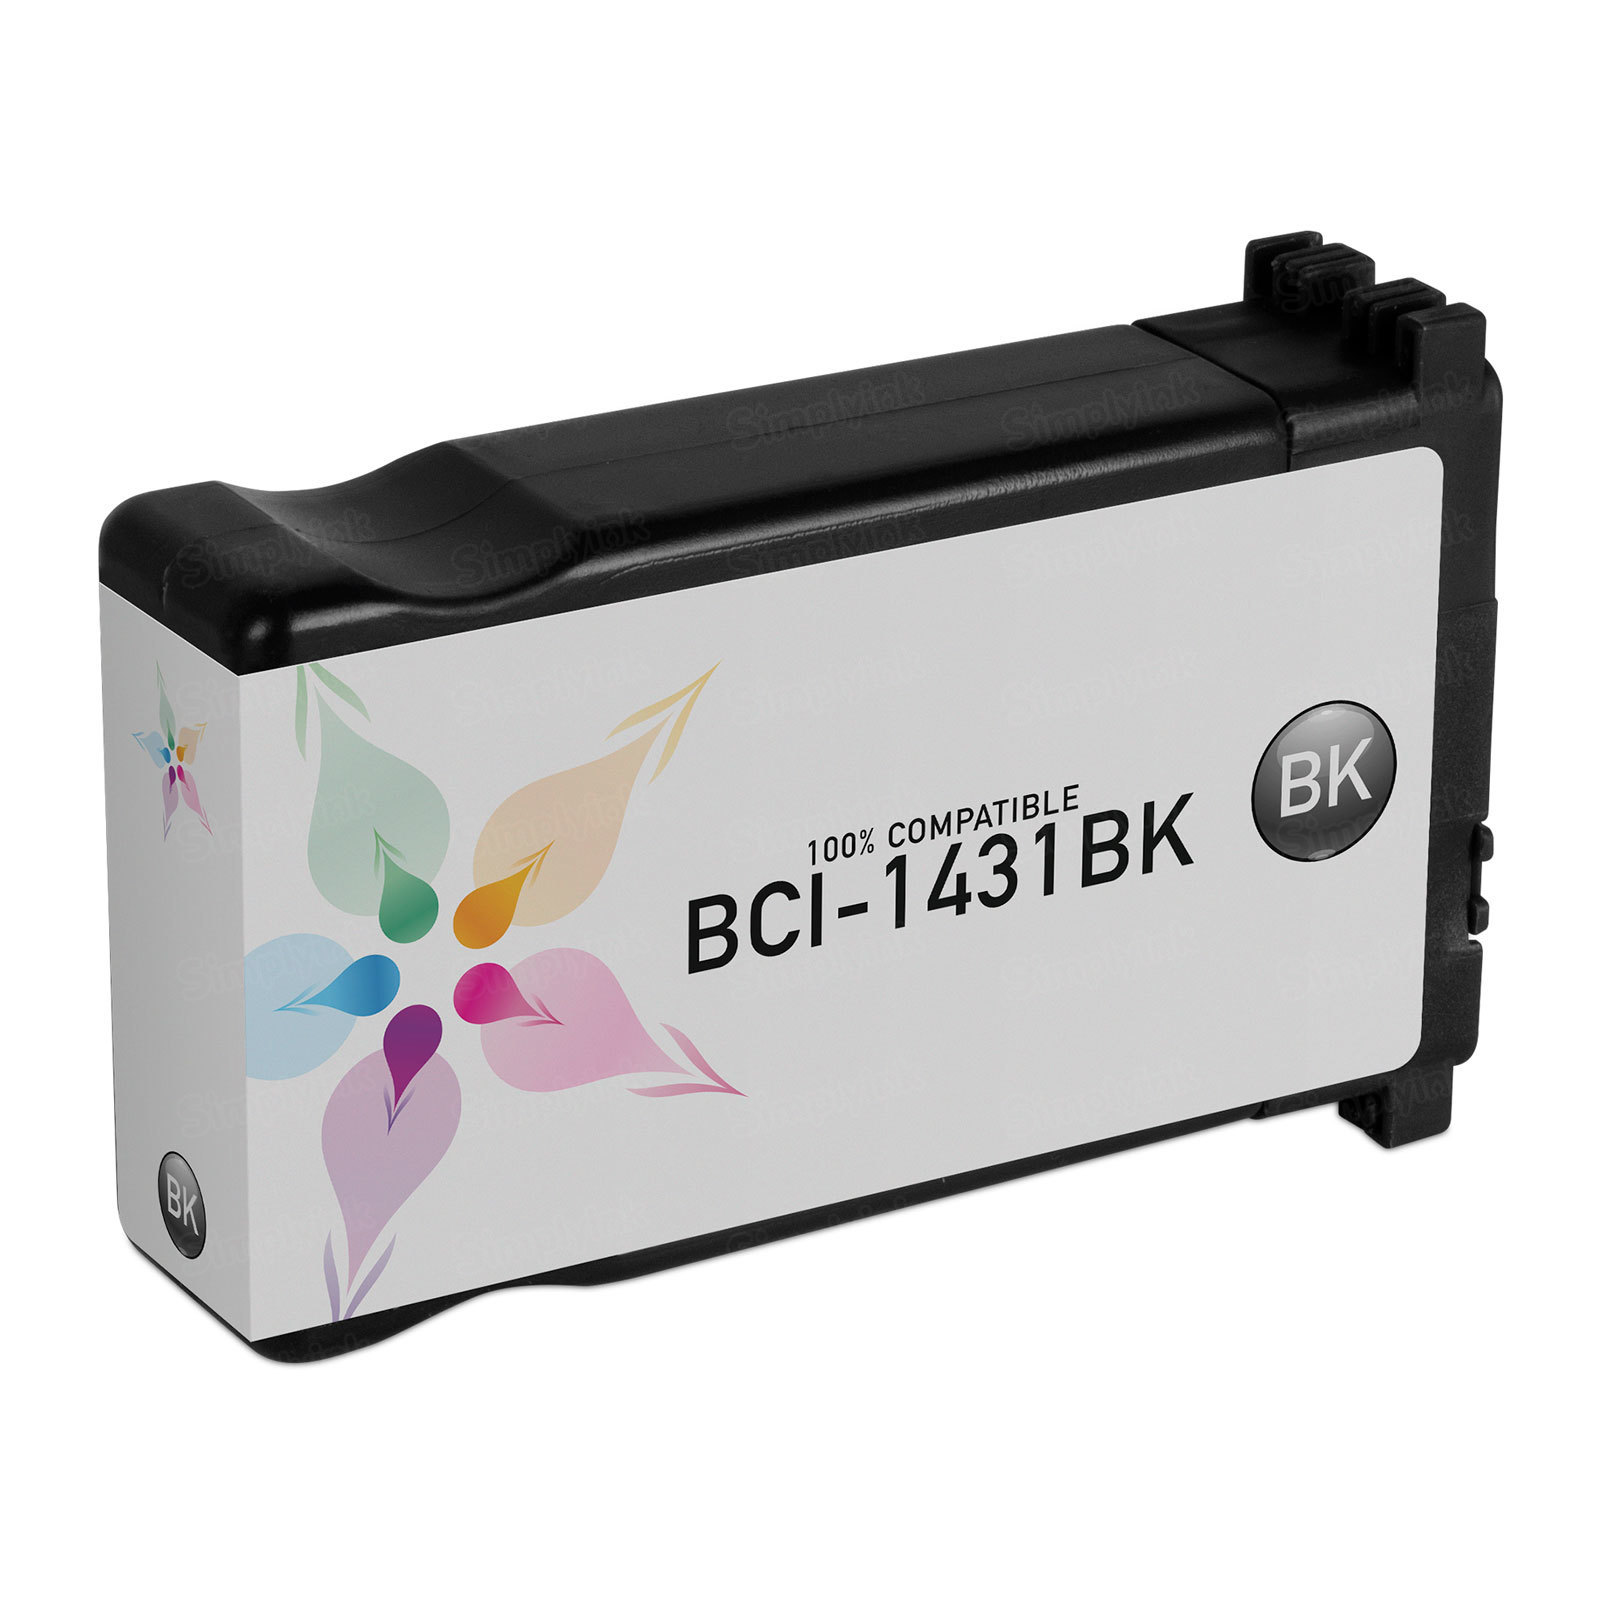 Canon Compatible BCI1431BK Black Ink for imagePROGRAF W6200 & W6400